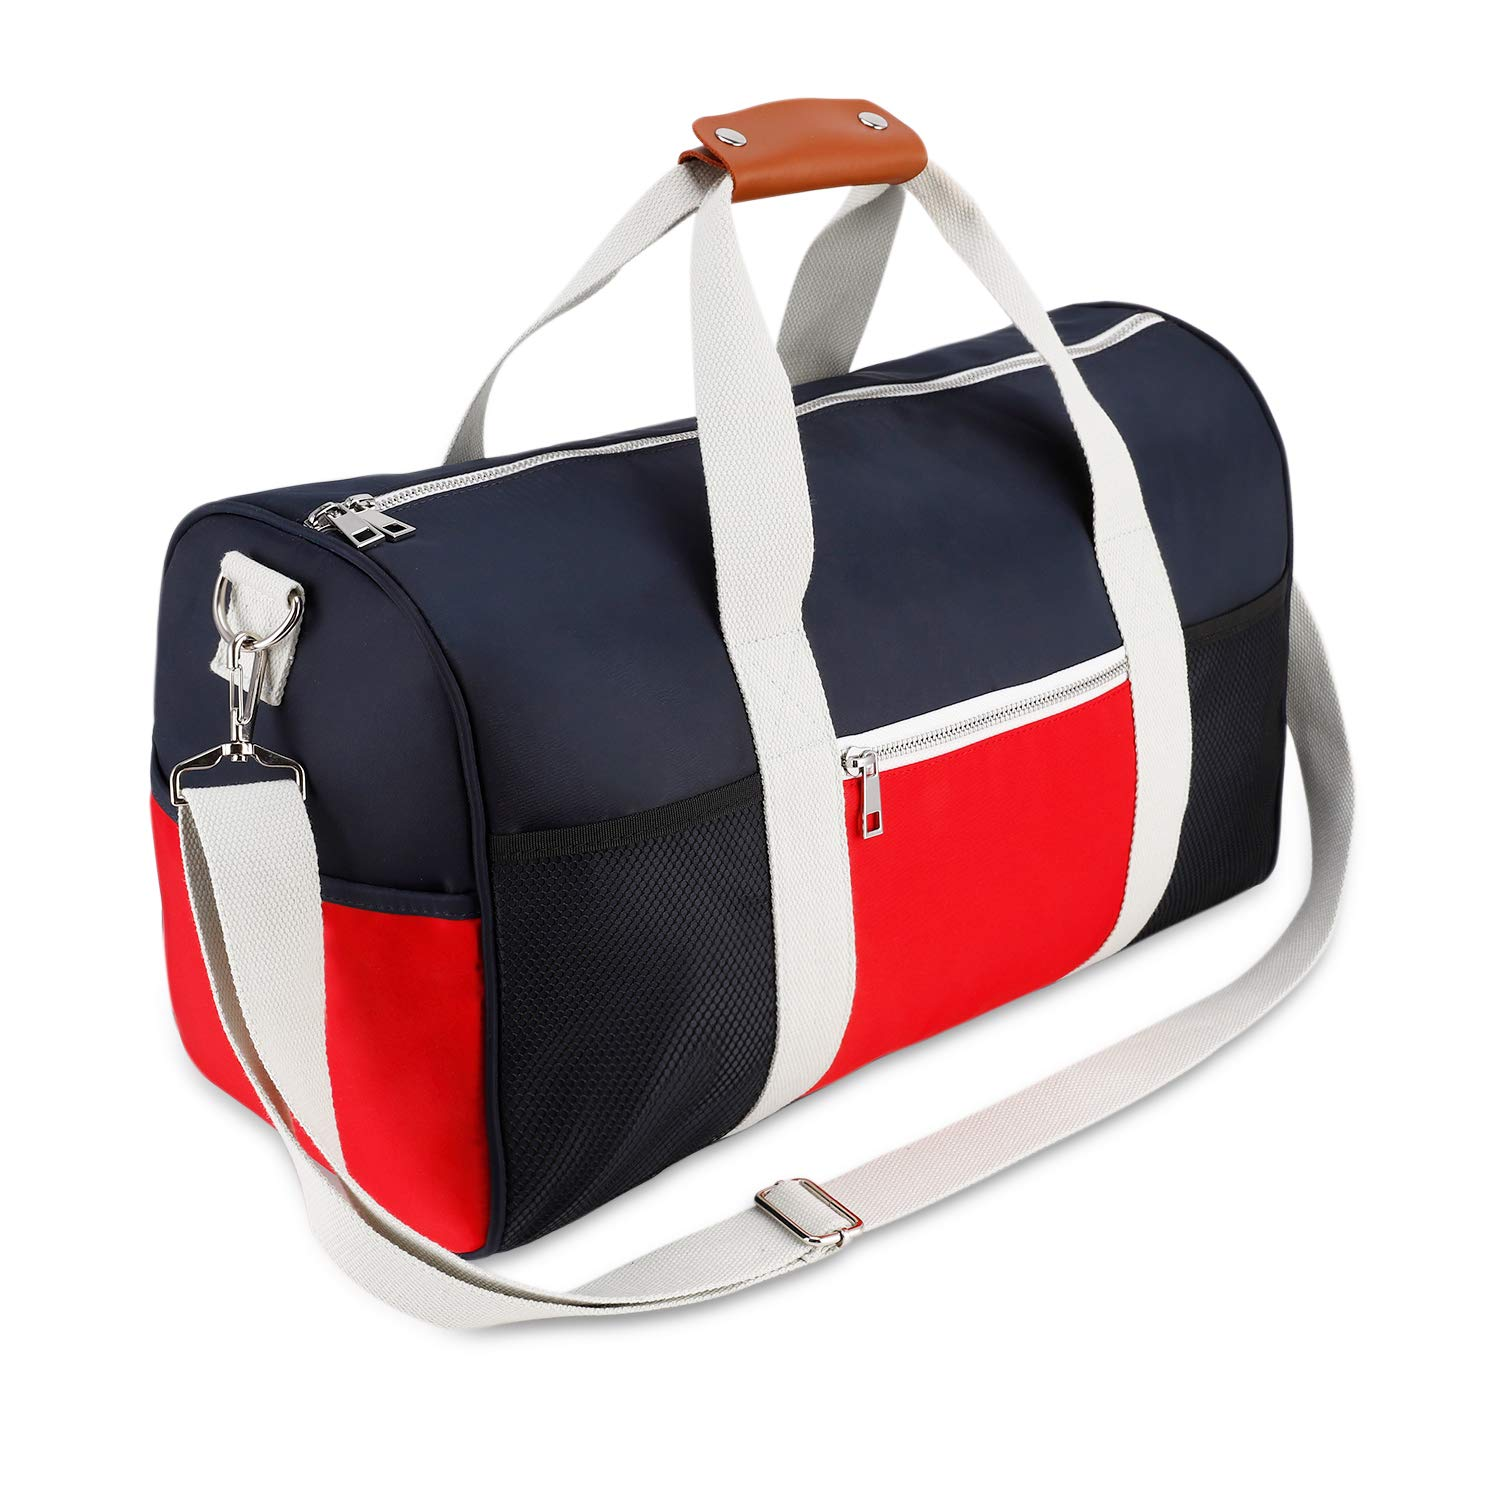 Gym Bag Duffel Bag for Women Men,Travel Bag for Sports,Genuine Leather Handle